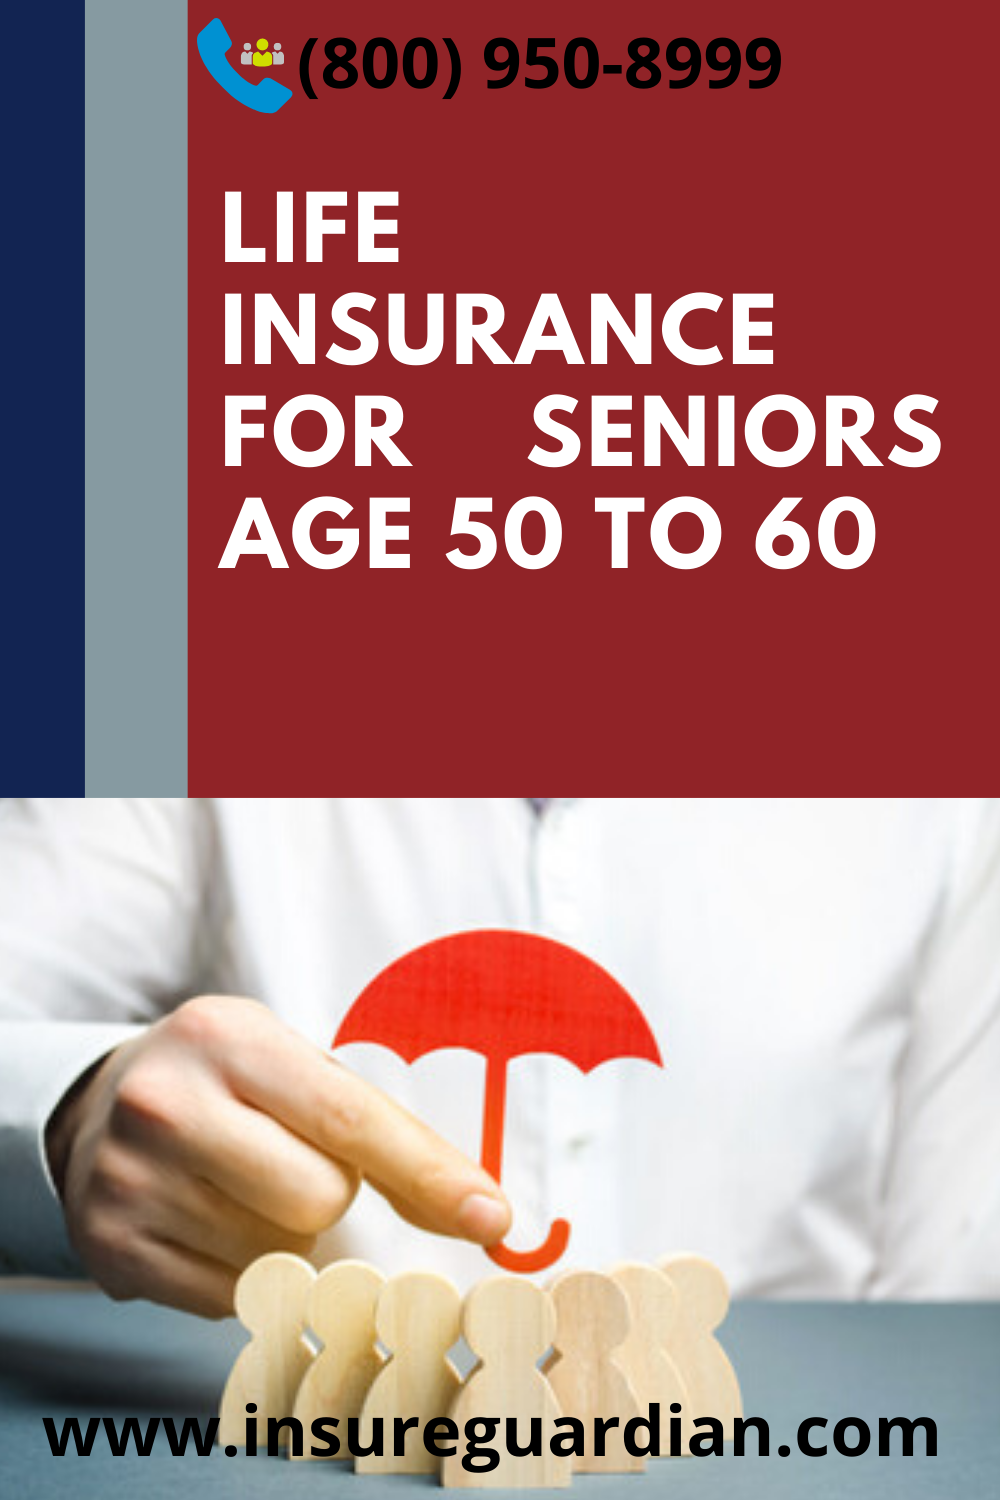 Life Insurance For Seniors Age 50 To 60 In 2020 Life Insurance For Seniors Final Expense Life Insurance Life